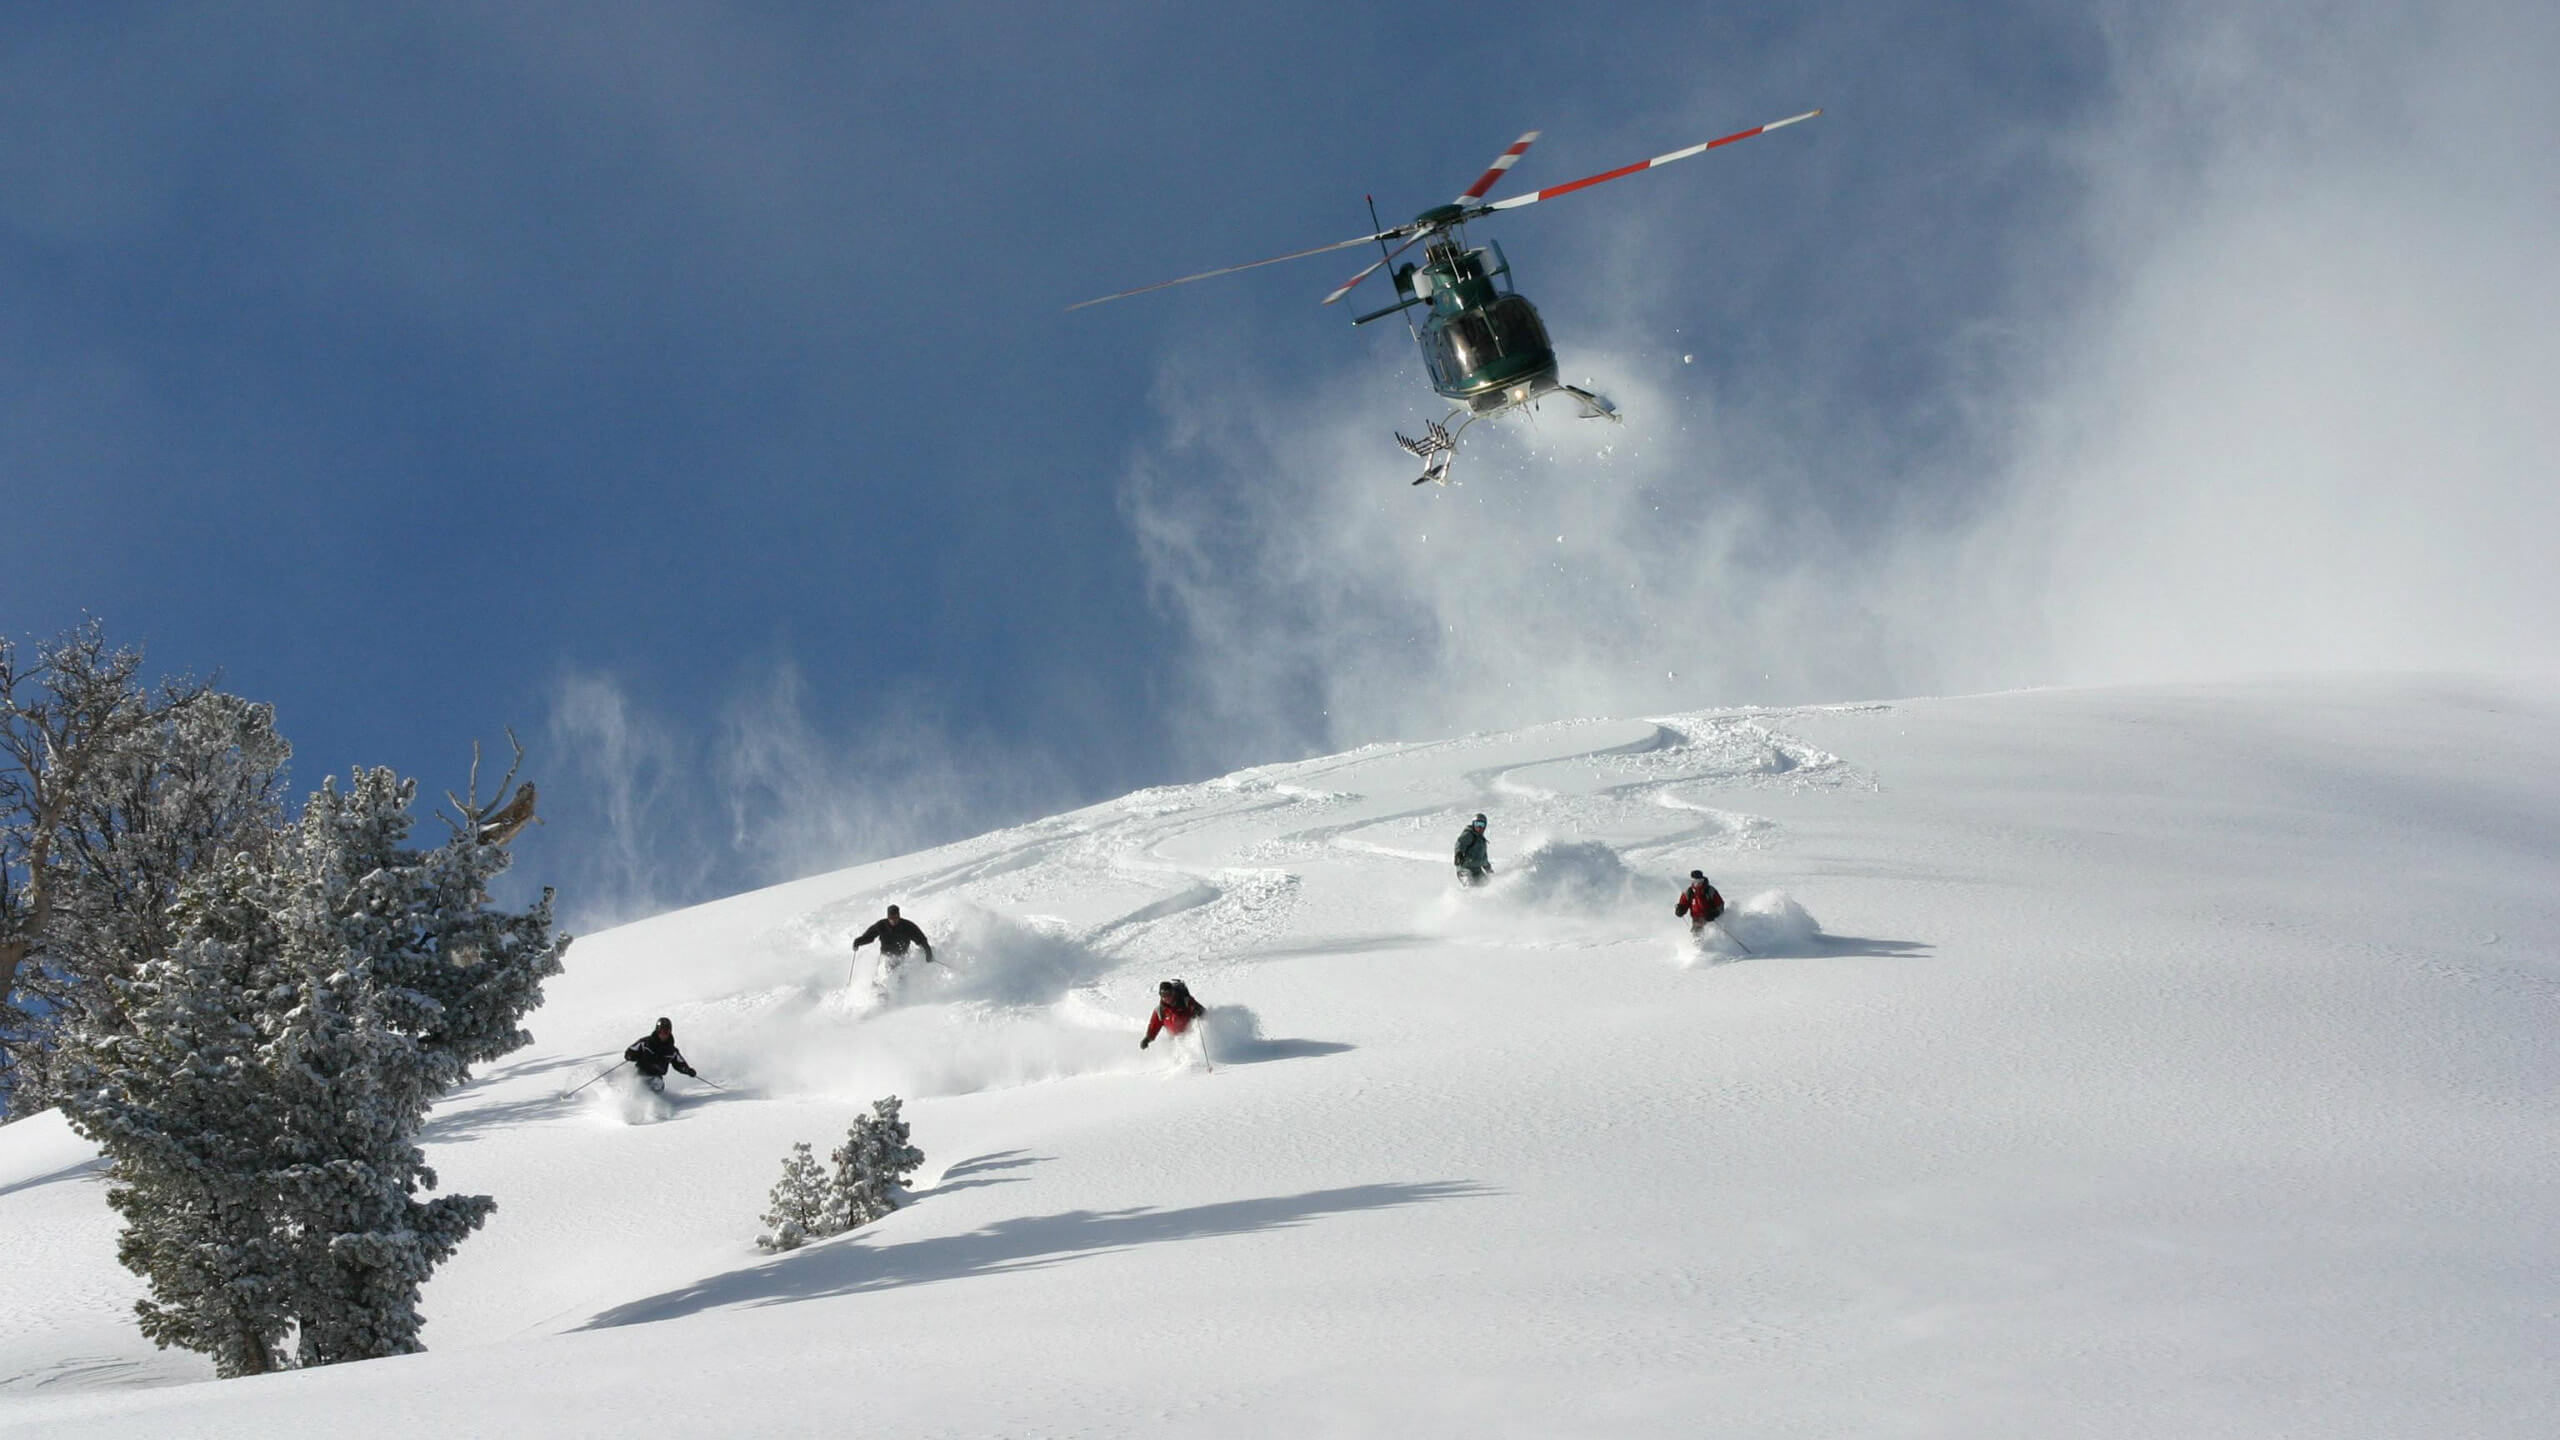 schweitzer helicopter with Pushing The Limits With Heli Skiing on 39 as well Super Puma Display Team likewise Manchester Helicopter Flight moreover Watch further Socata Tbm 700c2 Specs And Description.